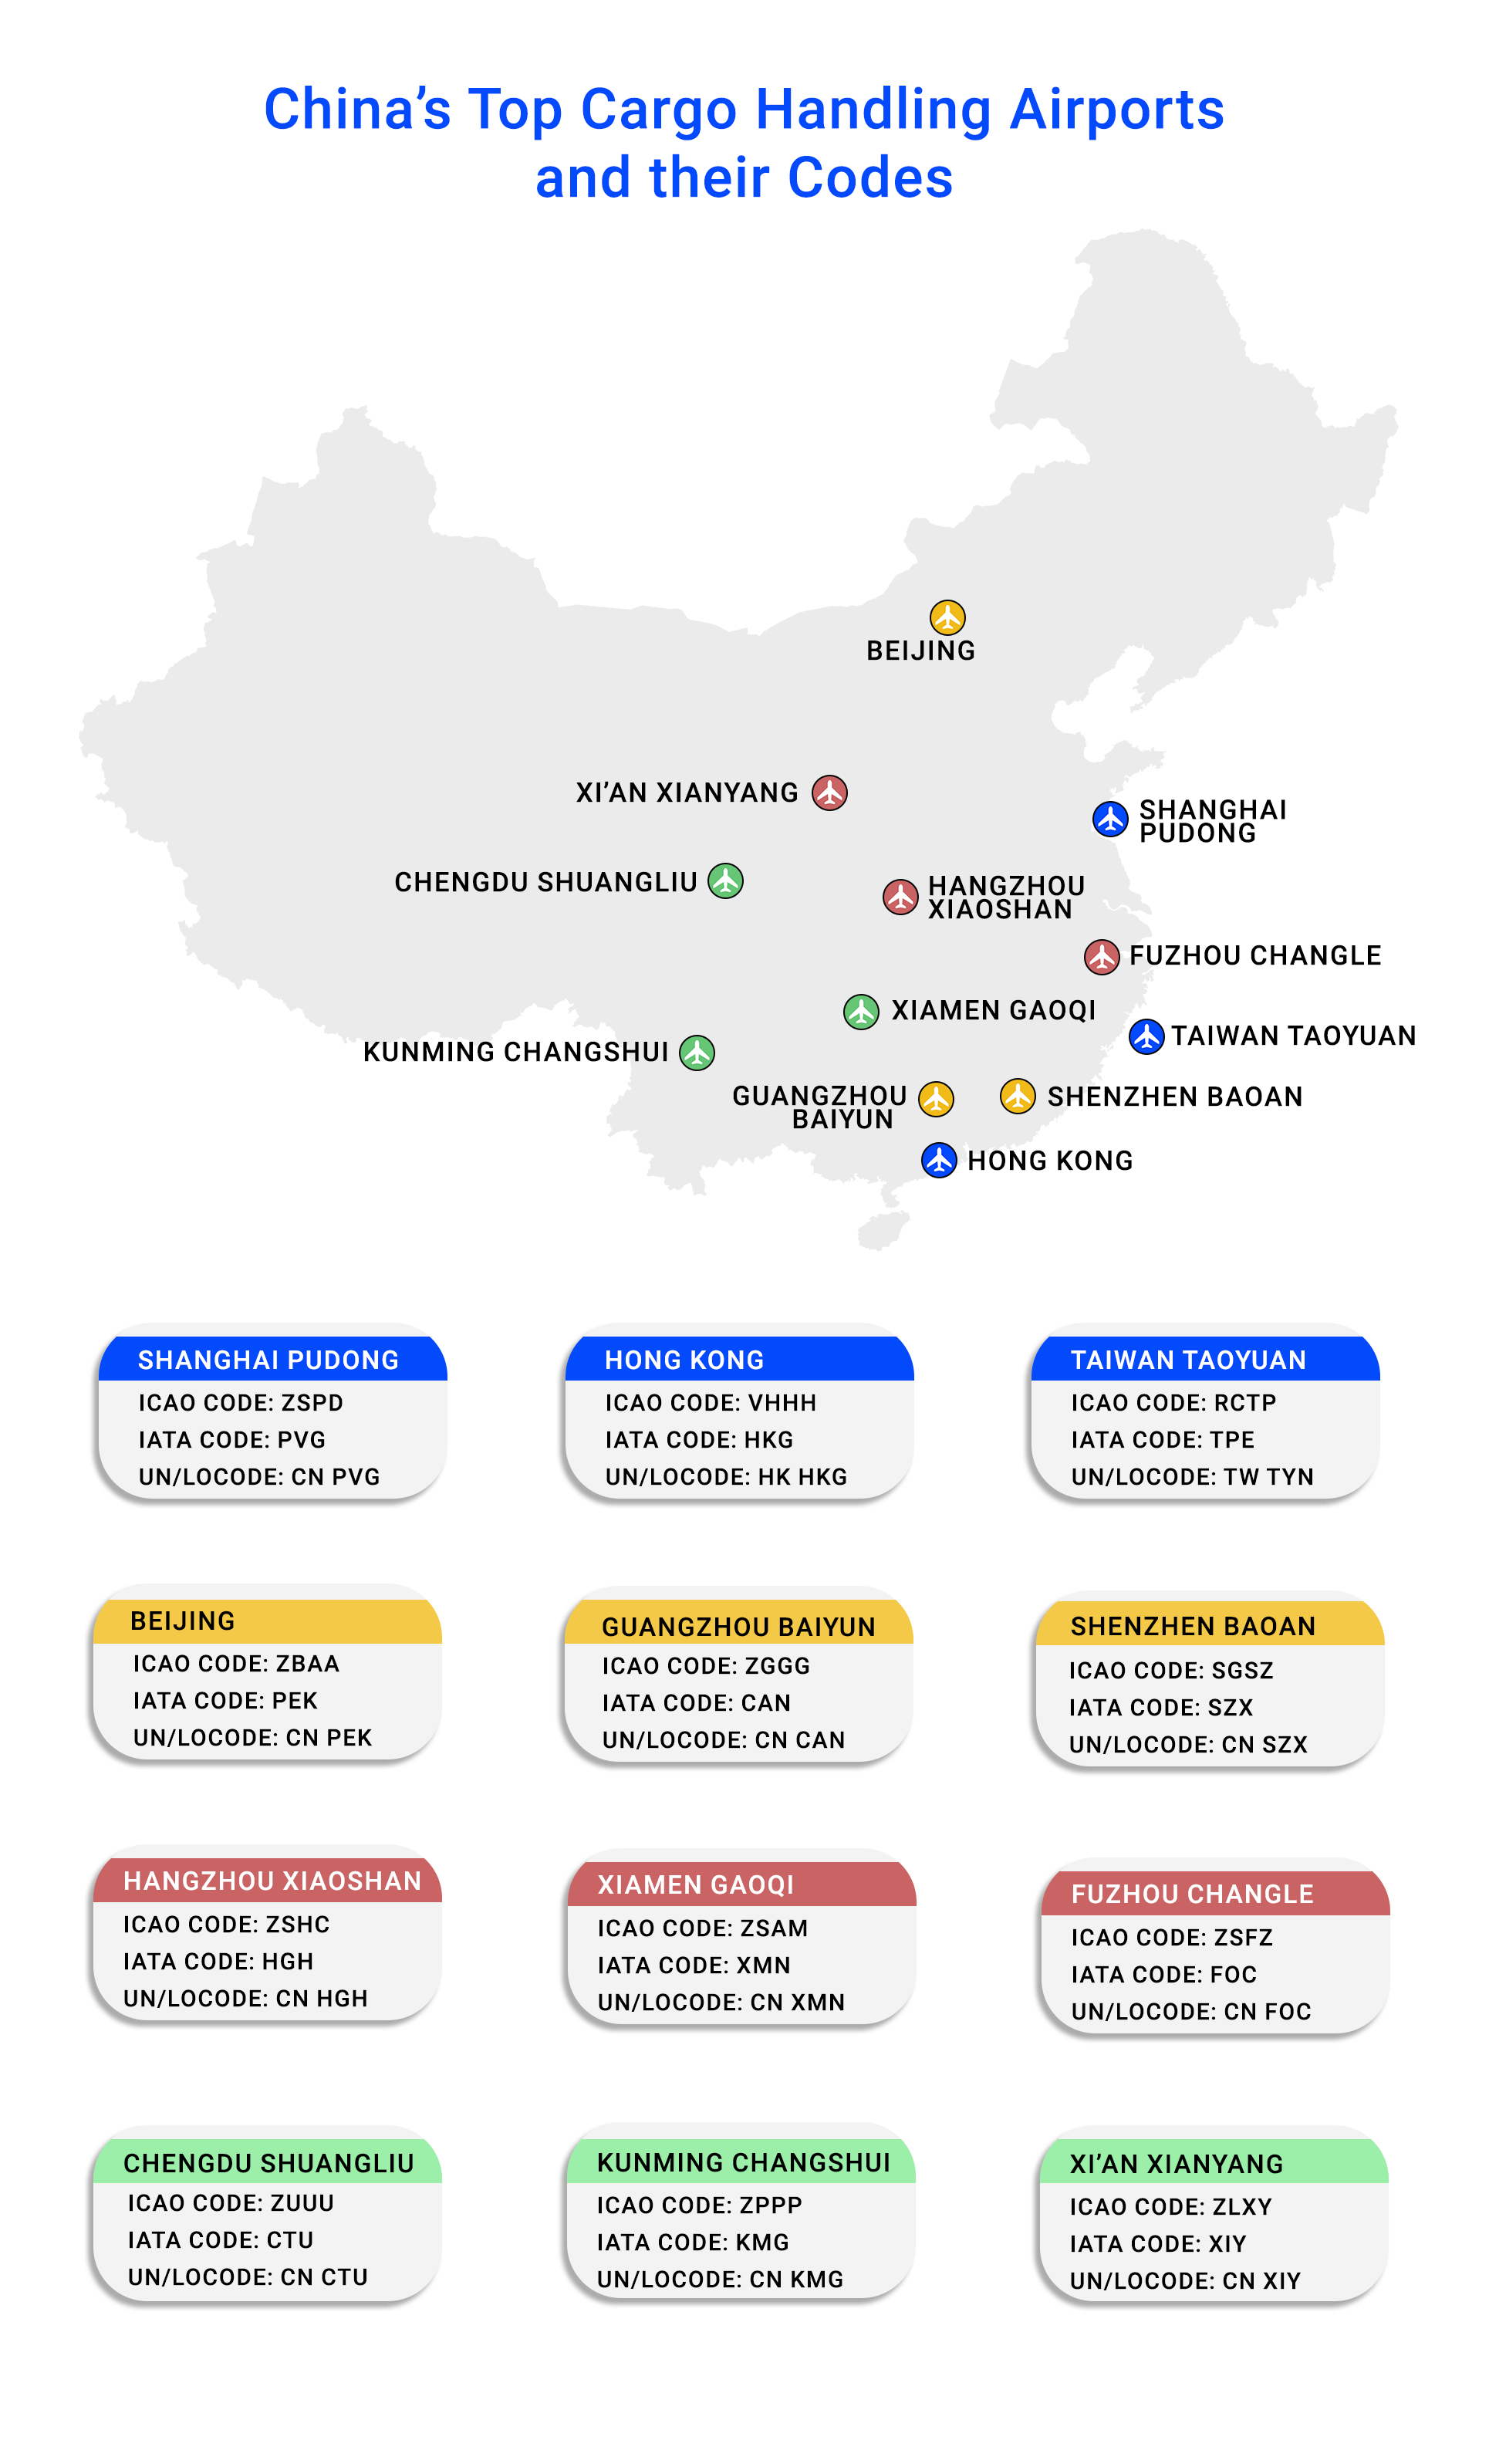 China's Top Cargo Handling Airports & Their Code